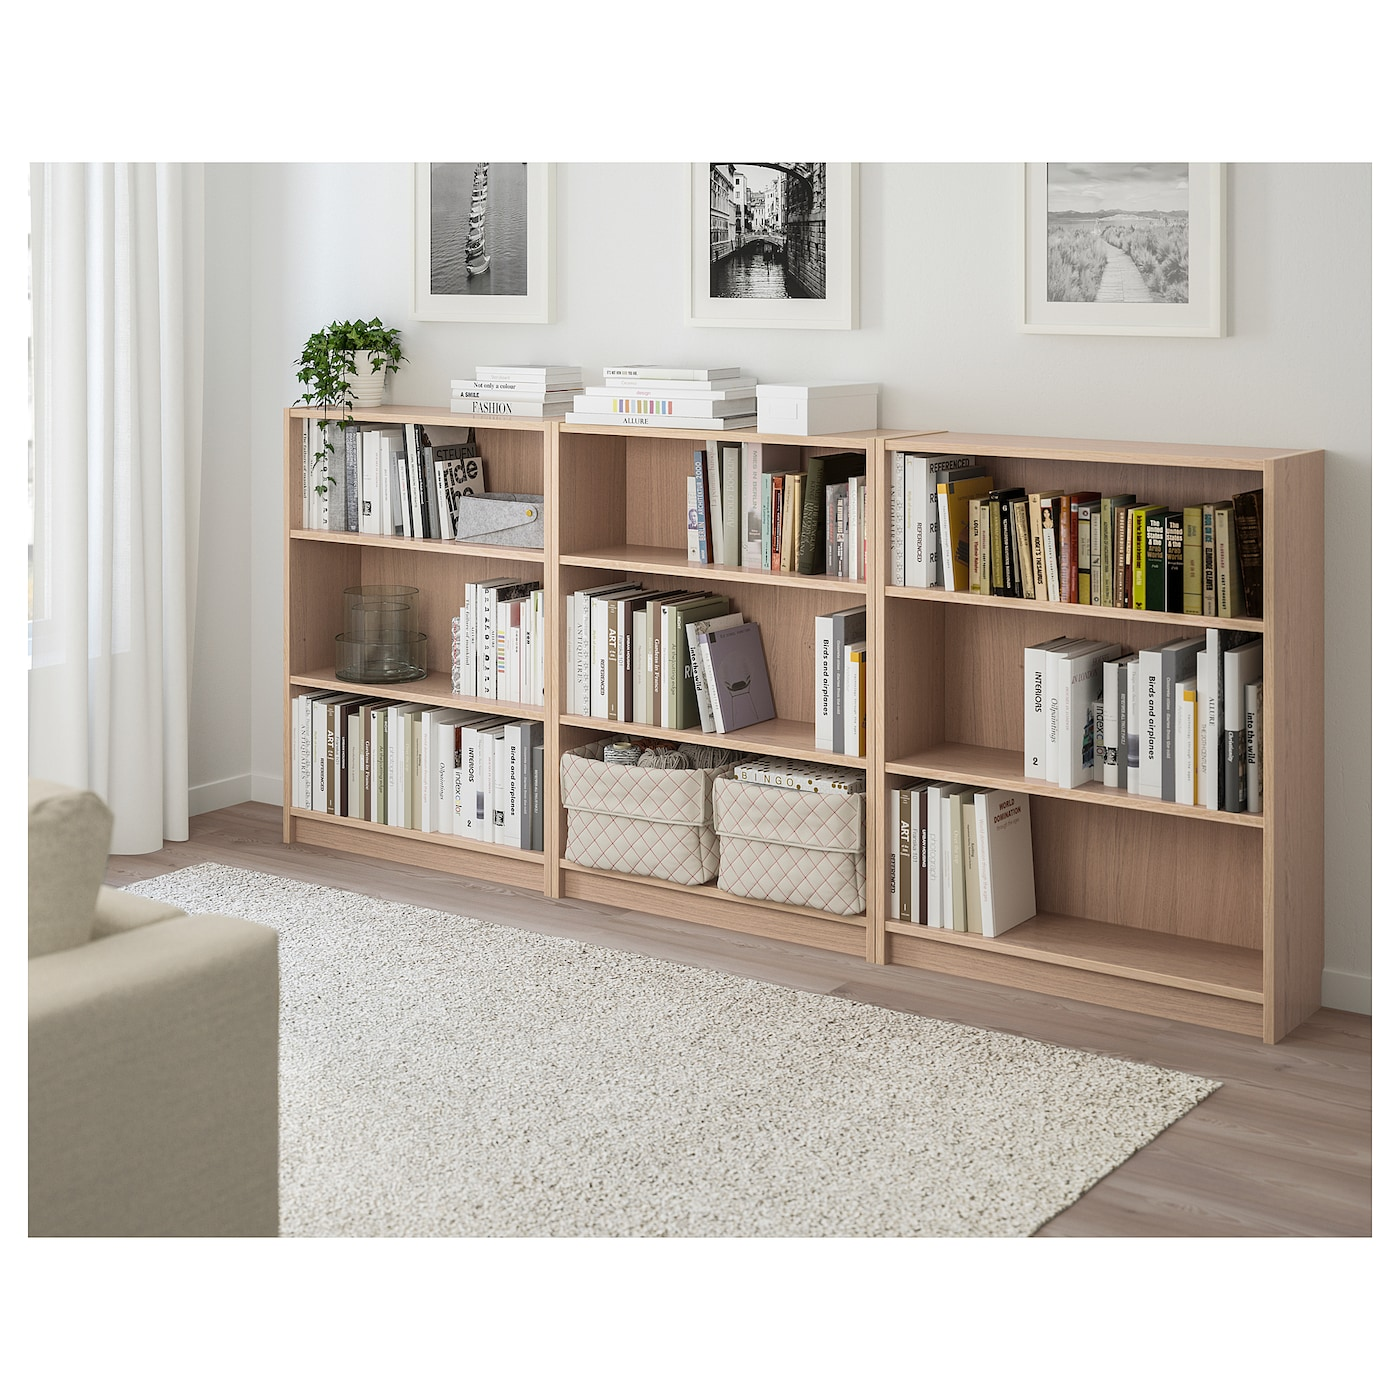 https://www.ikea.com/be/nl/images/products/billy-boekenkast-wit-gelazuurd-eikenfineer__0565124_pe664932_s5.jpg